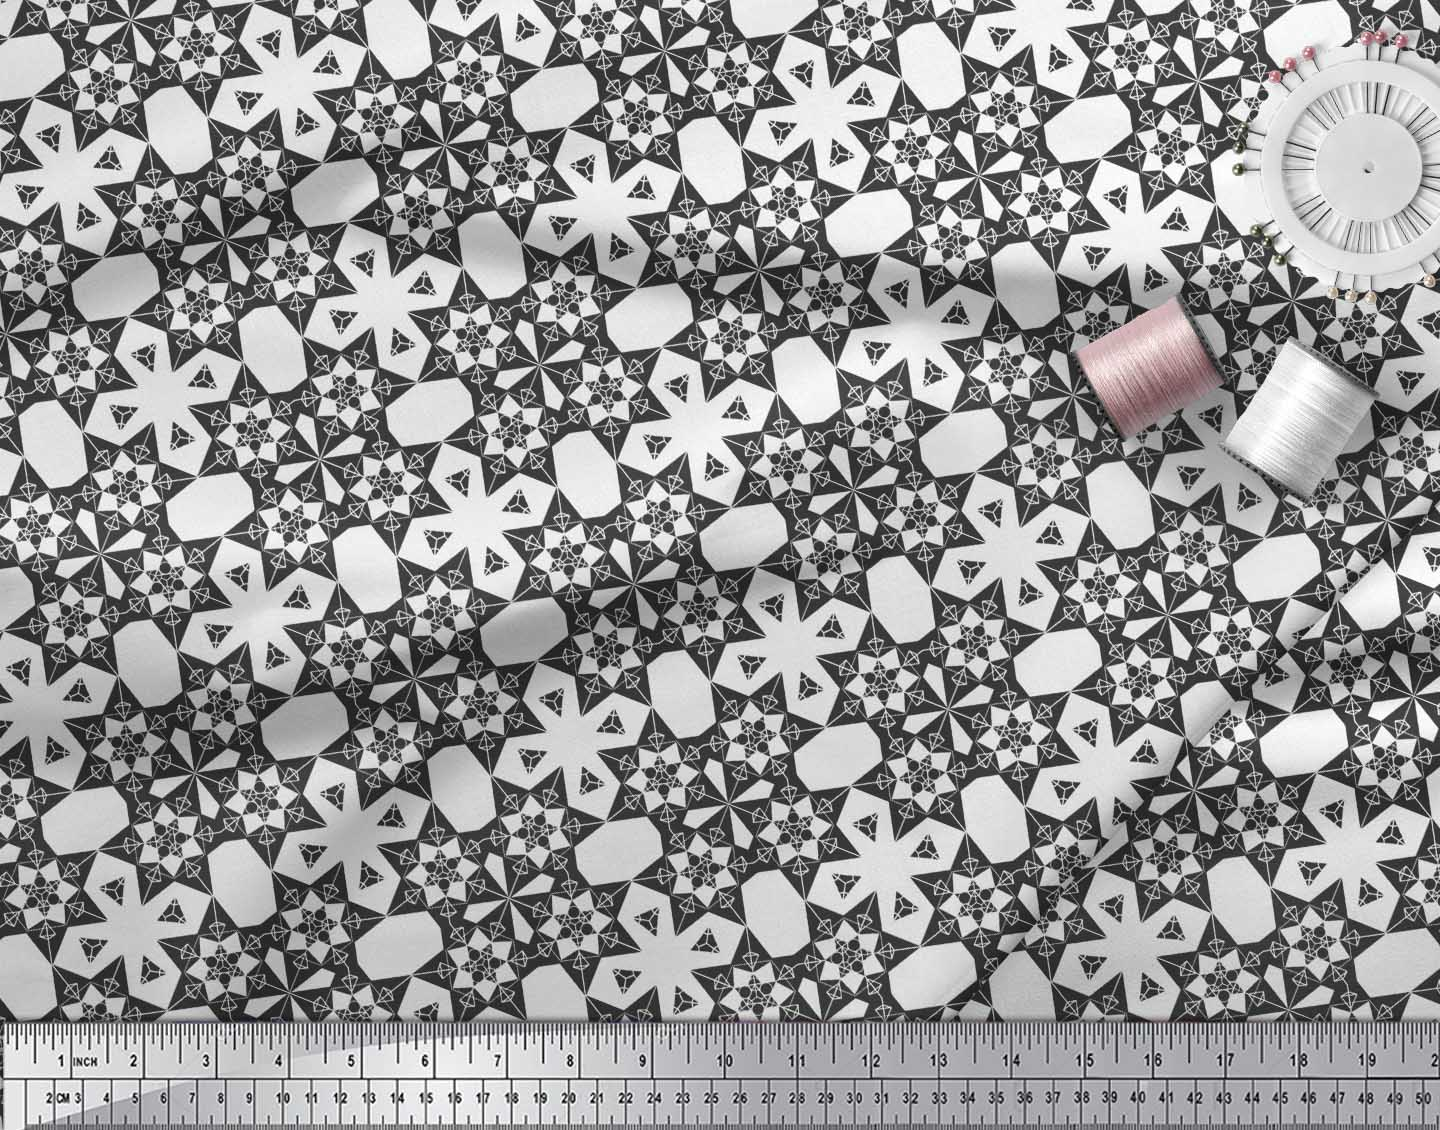 Soimoi-Black-Cotton-Poplin-Fabric-Geometrical-Star-Geometric-Fabric-WTD thumbnail 4